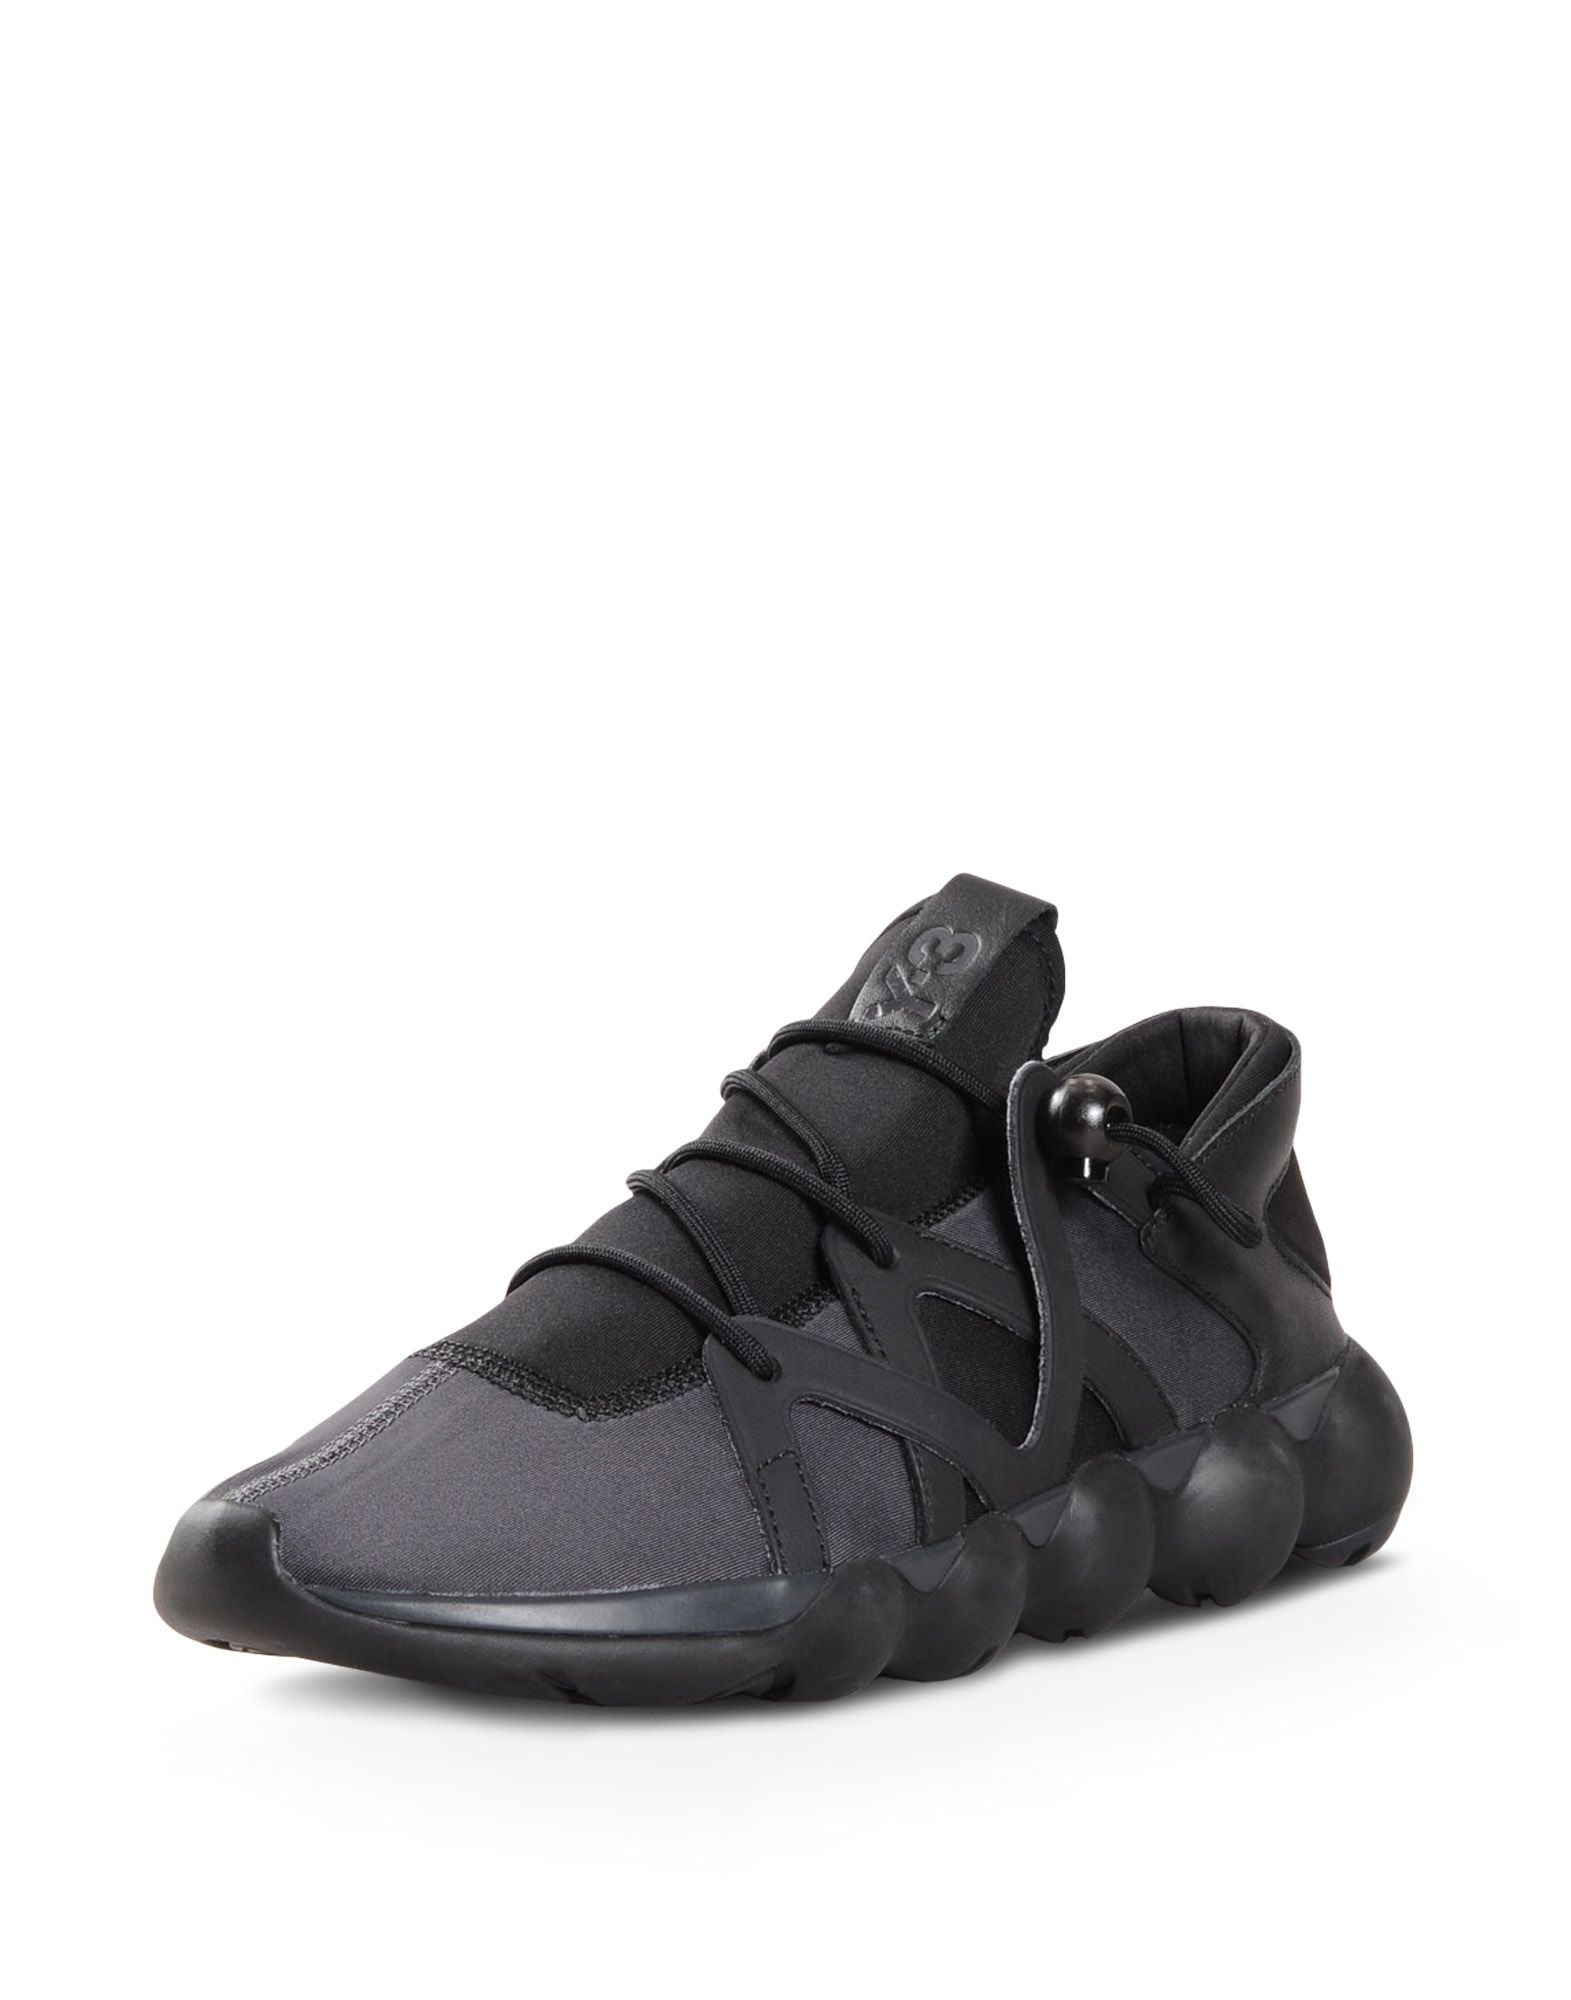 Y-3 KYUJO LOW SHOES man Y-3 adidas